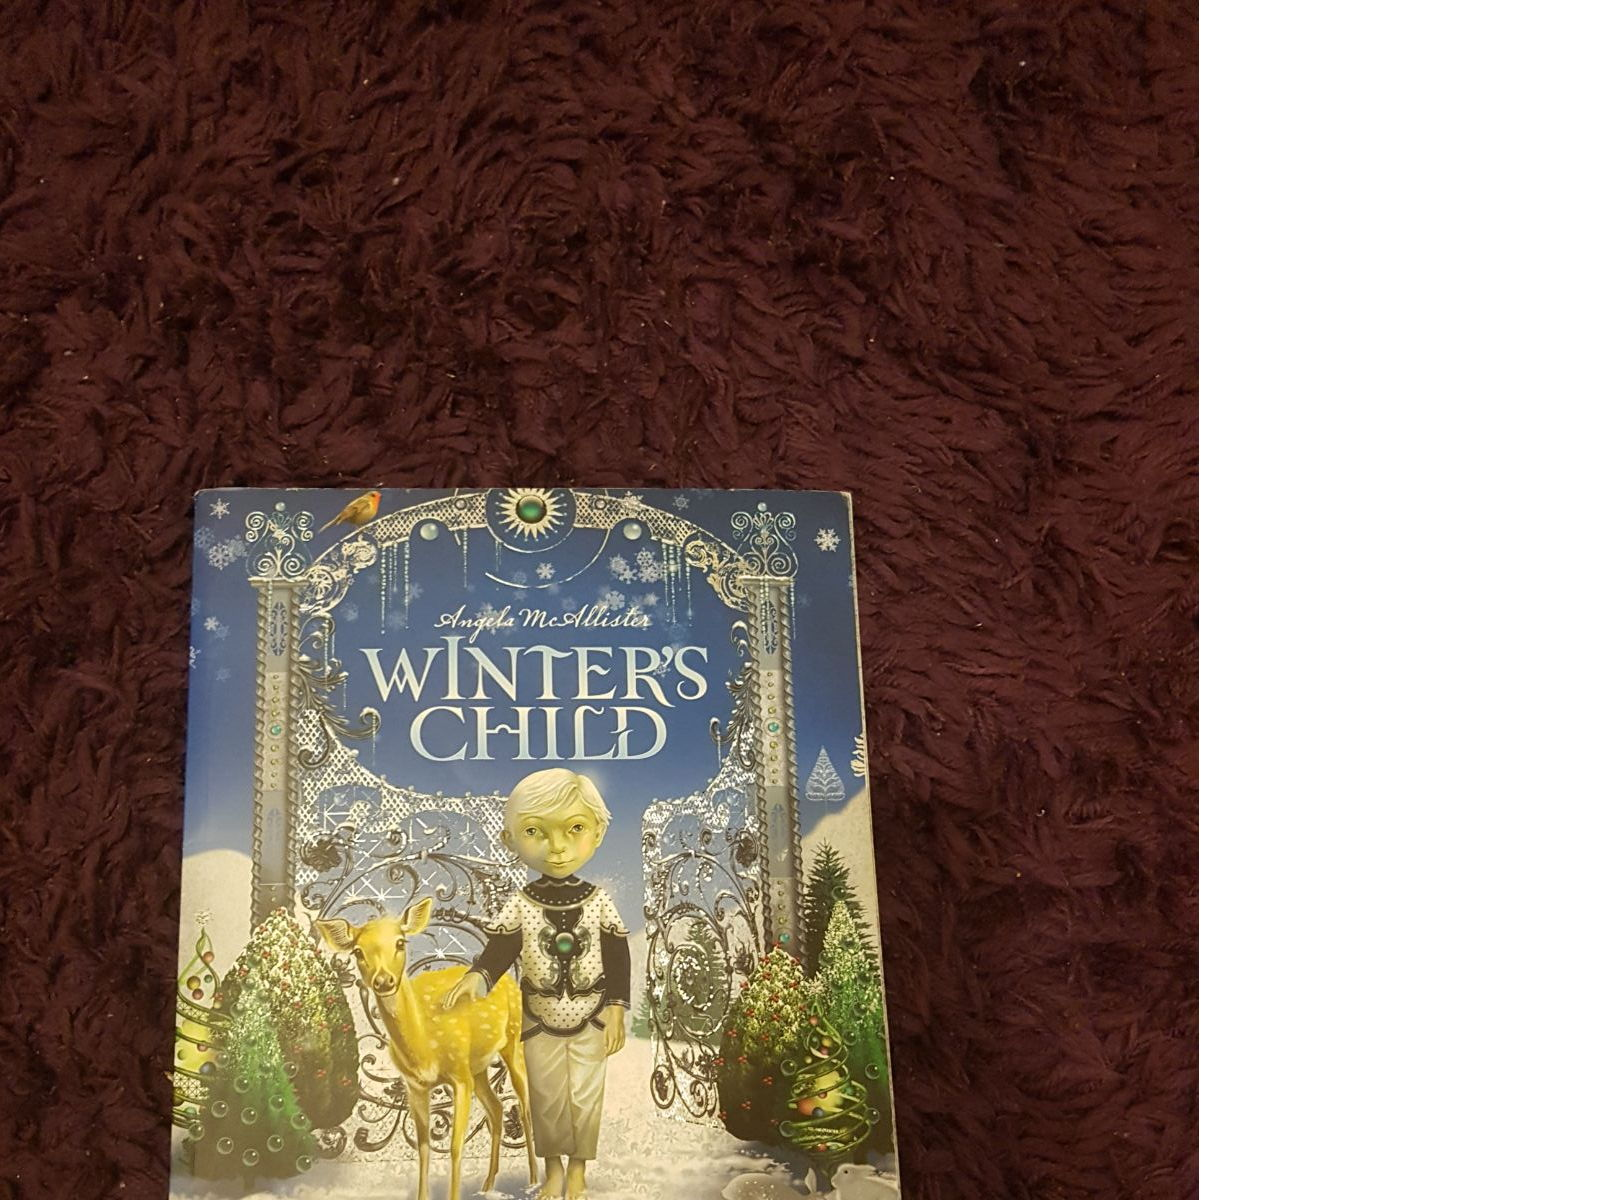 Winters Child by Angela Mc Allister